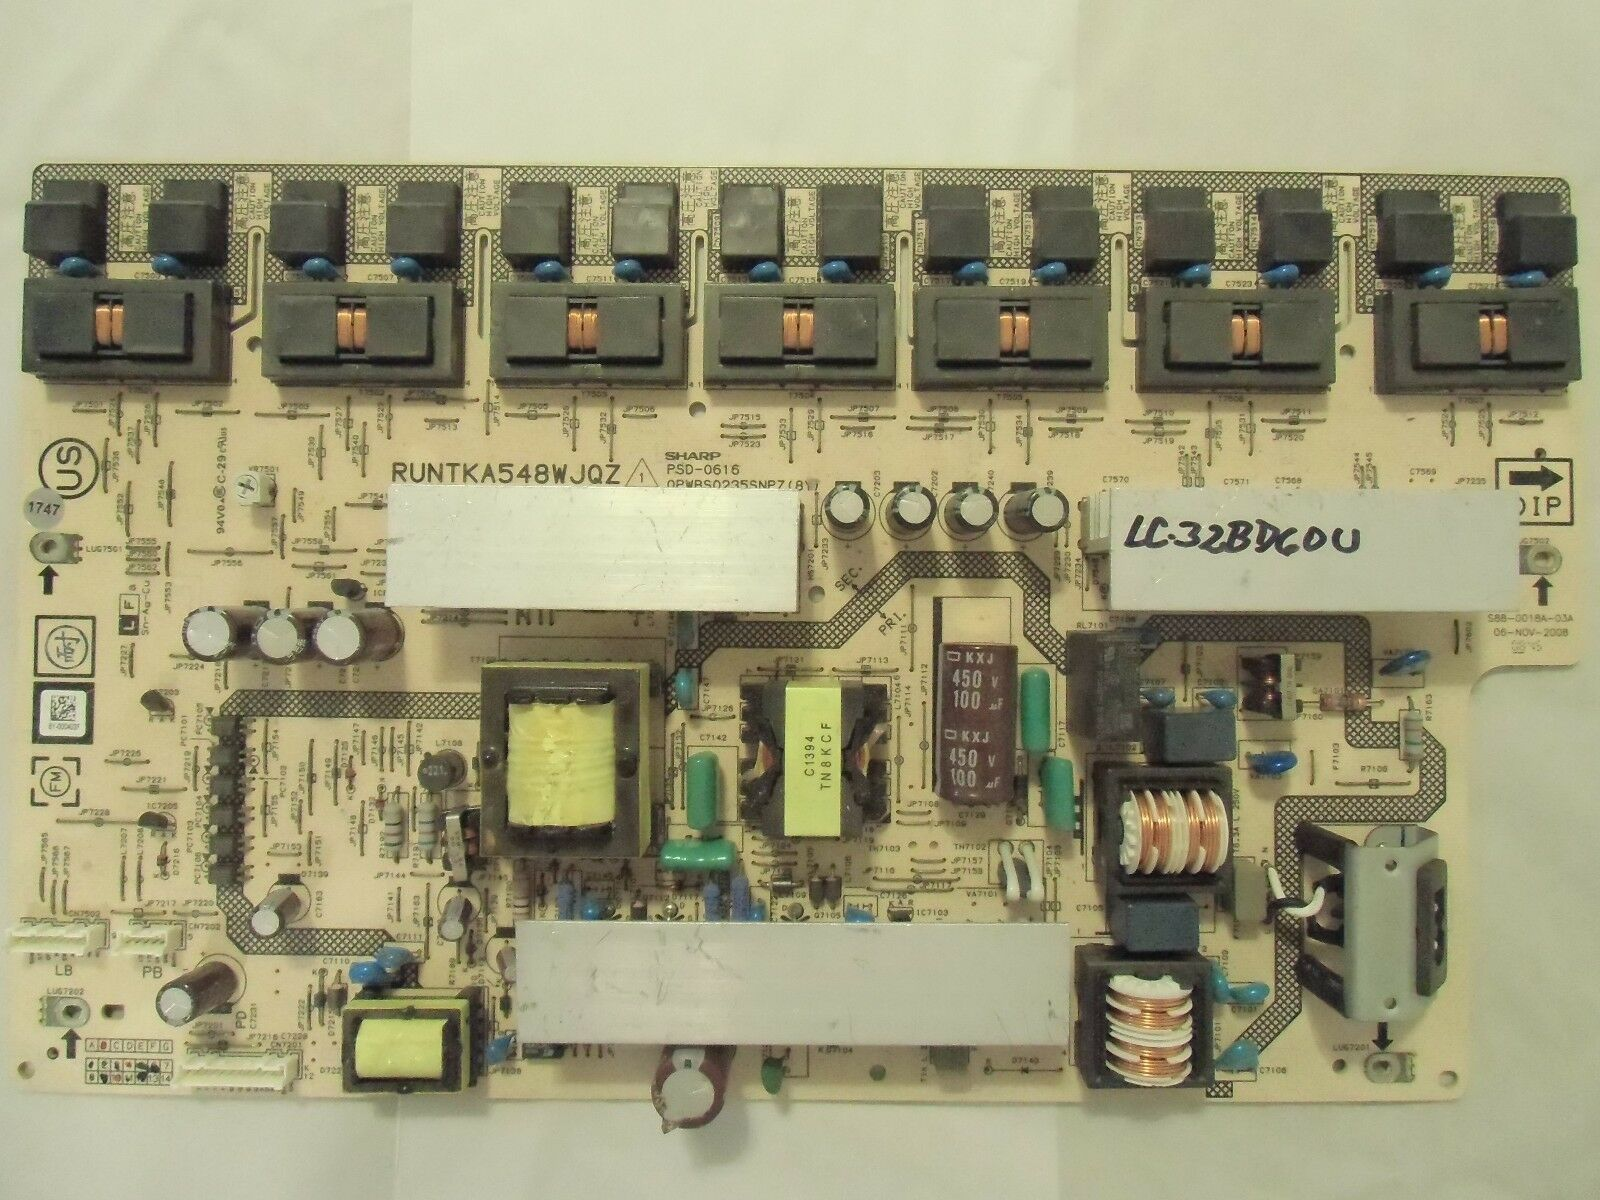 Primary image for Sharp LC-32BD60U Power Supply Unit RUNTKA548WJQZ